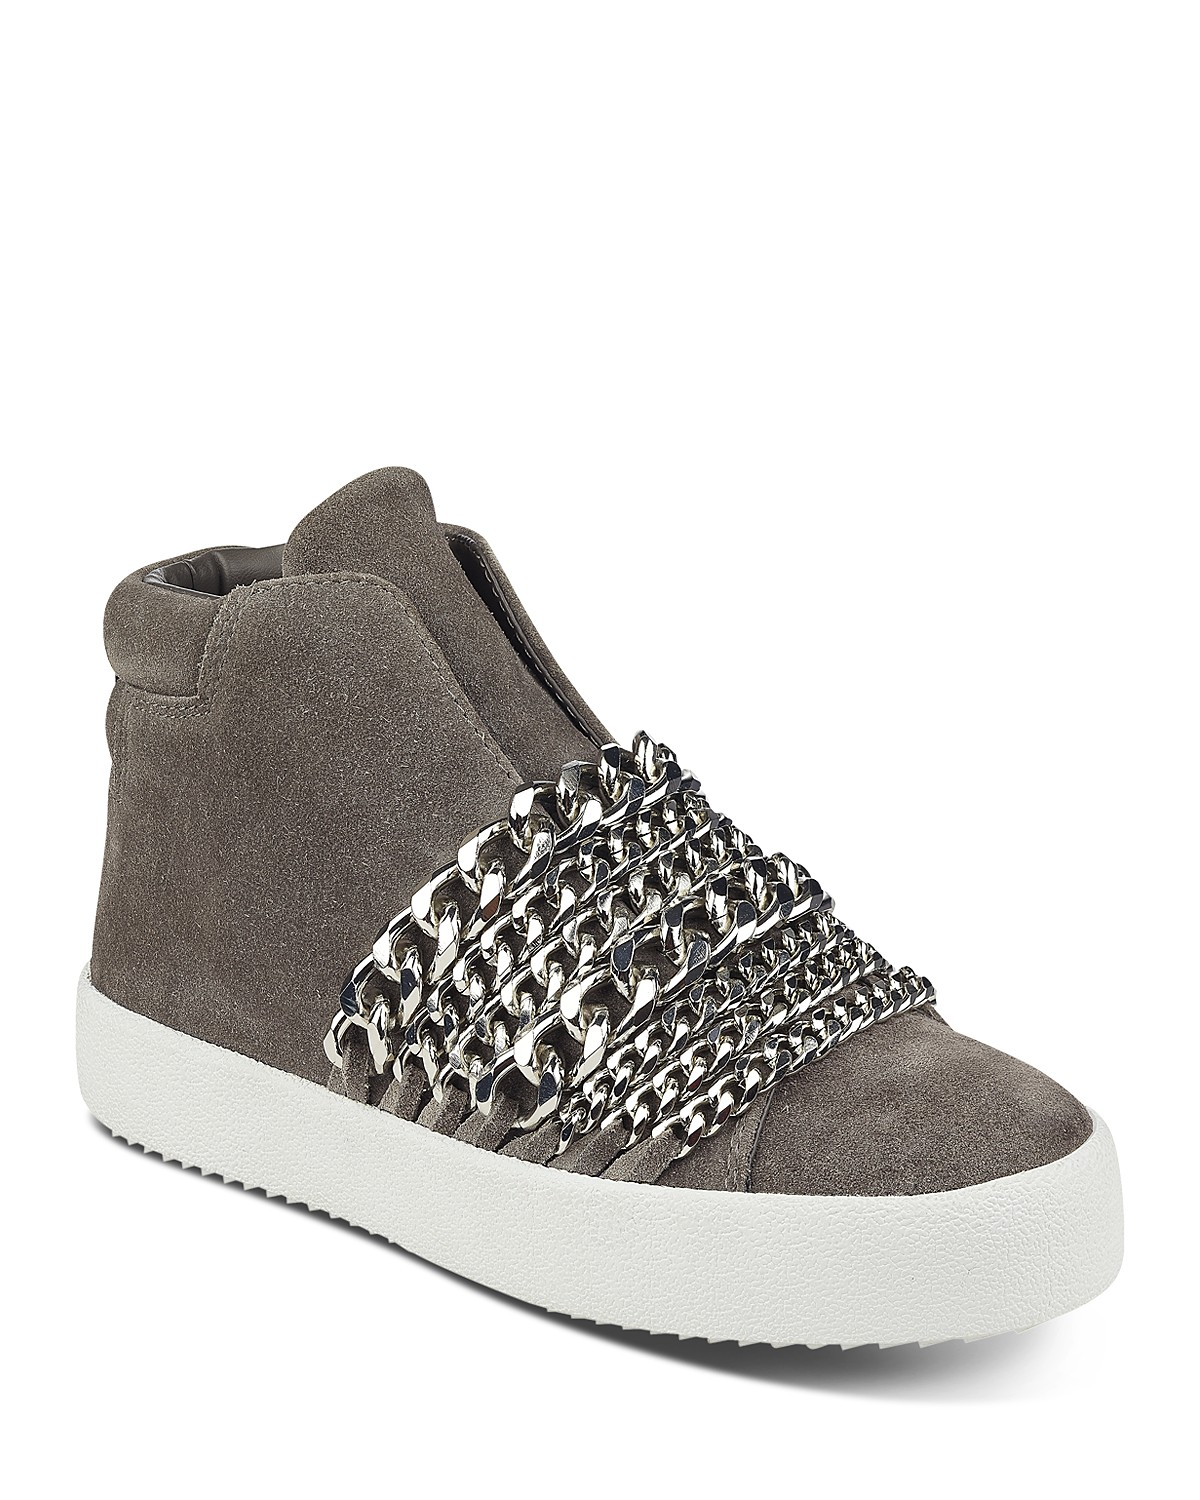 Kendall And Kylie Women's Duke Suede & Chain Trim Sneakers nRGBez